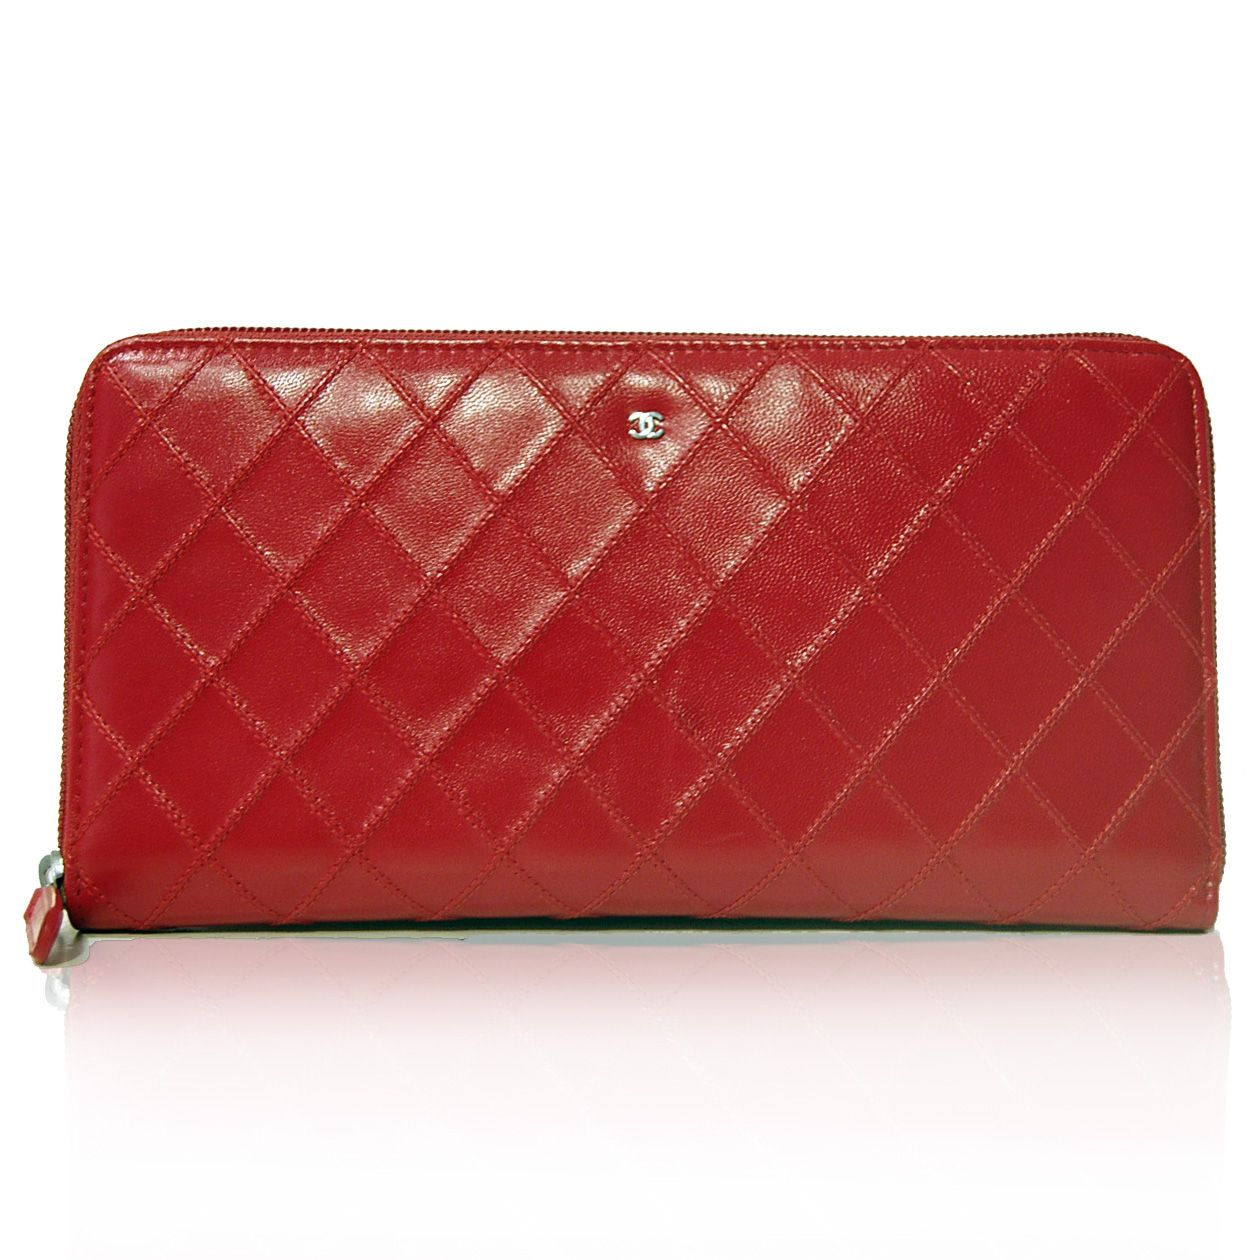 Chanel Red Large Zip Wallet http://www.consignofthetimes.com/product_details.asp?galleryid=8930#.U6H2m5RdWBU